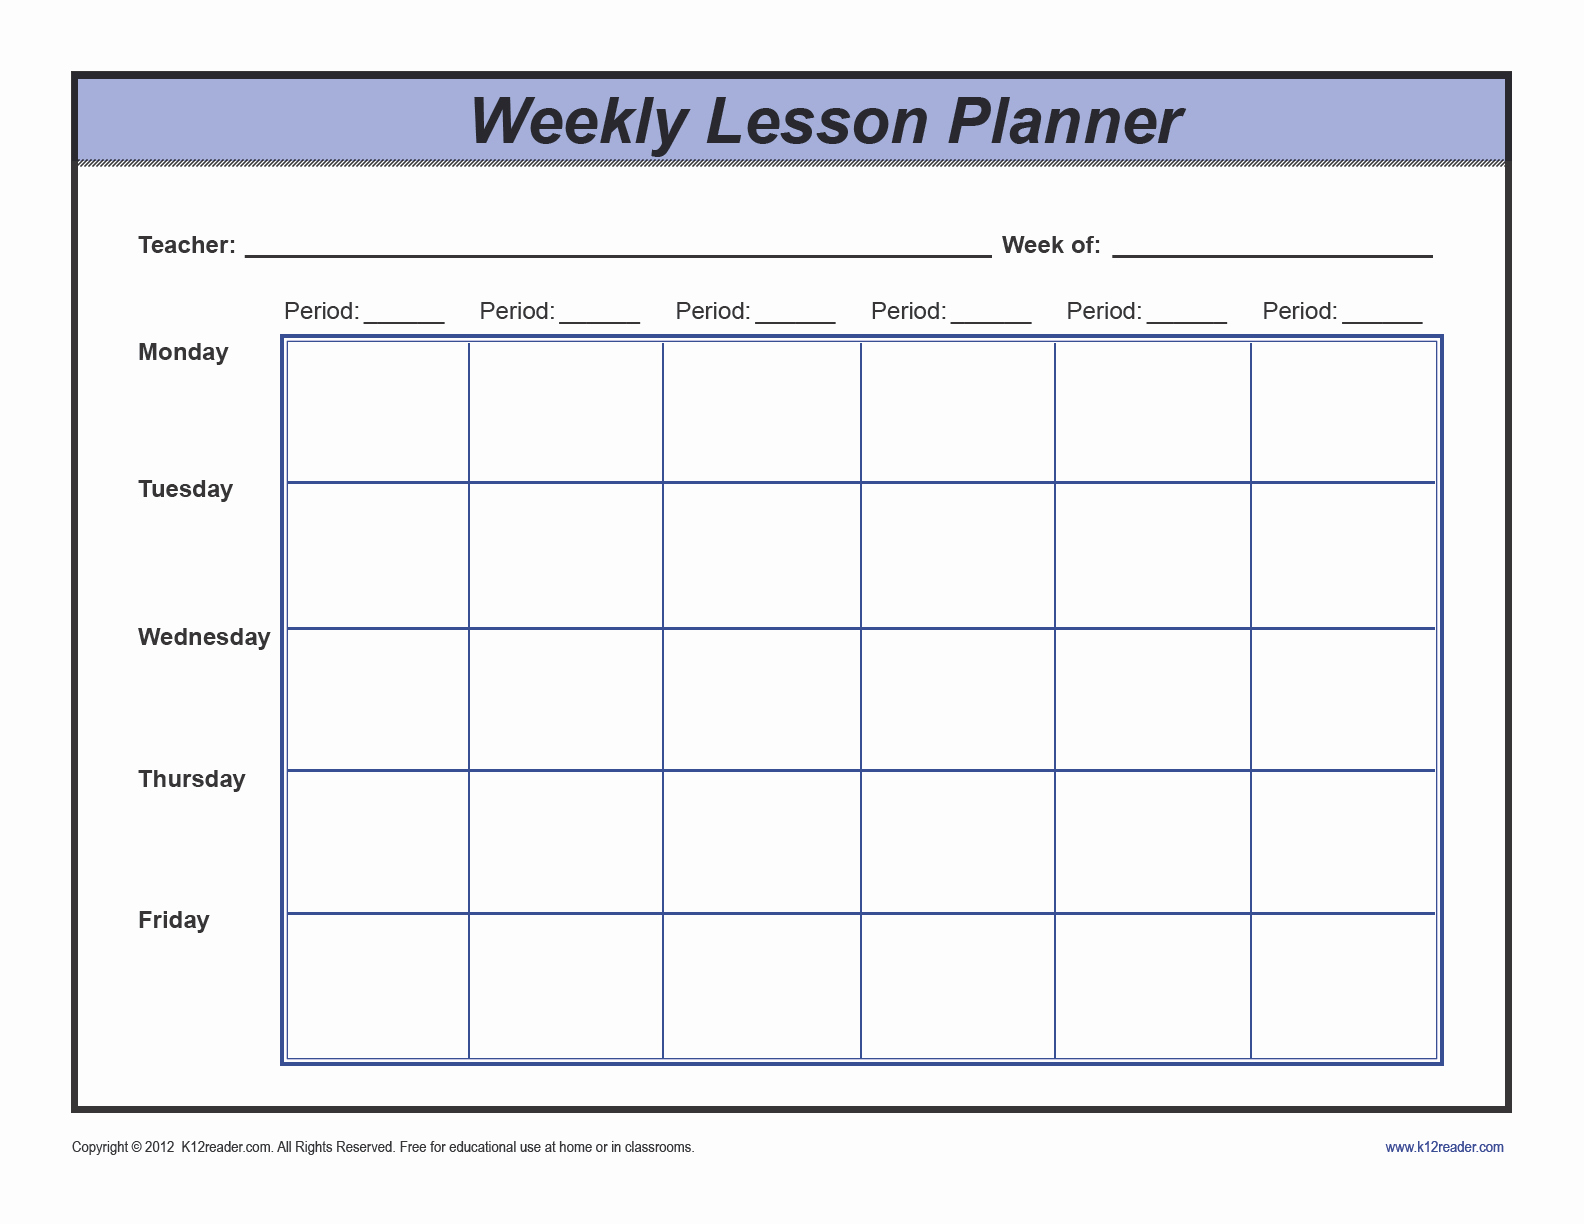 Weekly Lesson Plan Template Elementary Fresh Download Weekly Lesson Plan Template Preschool